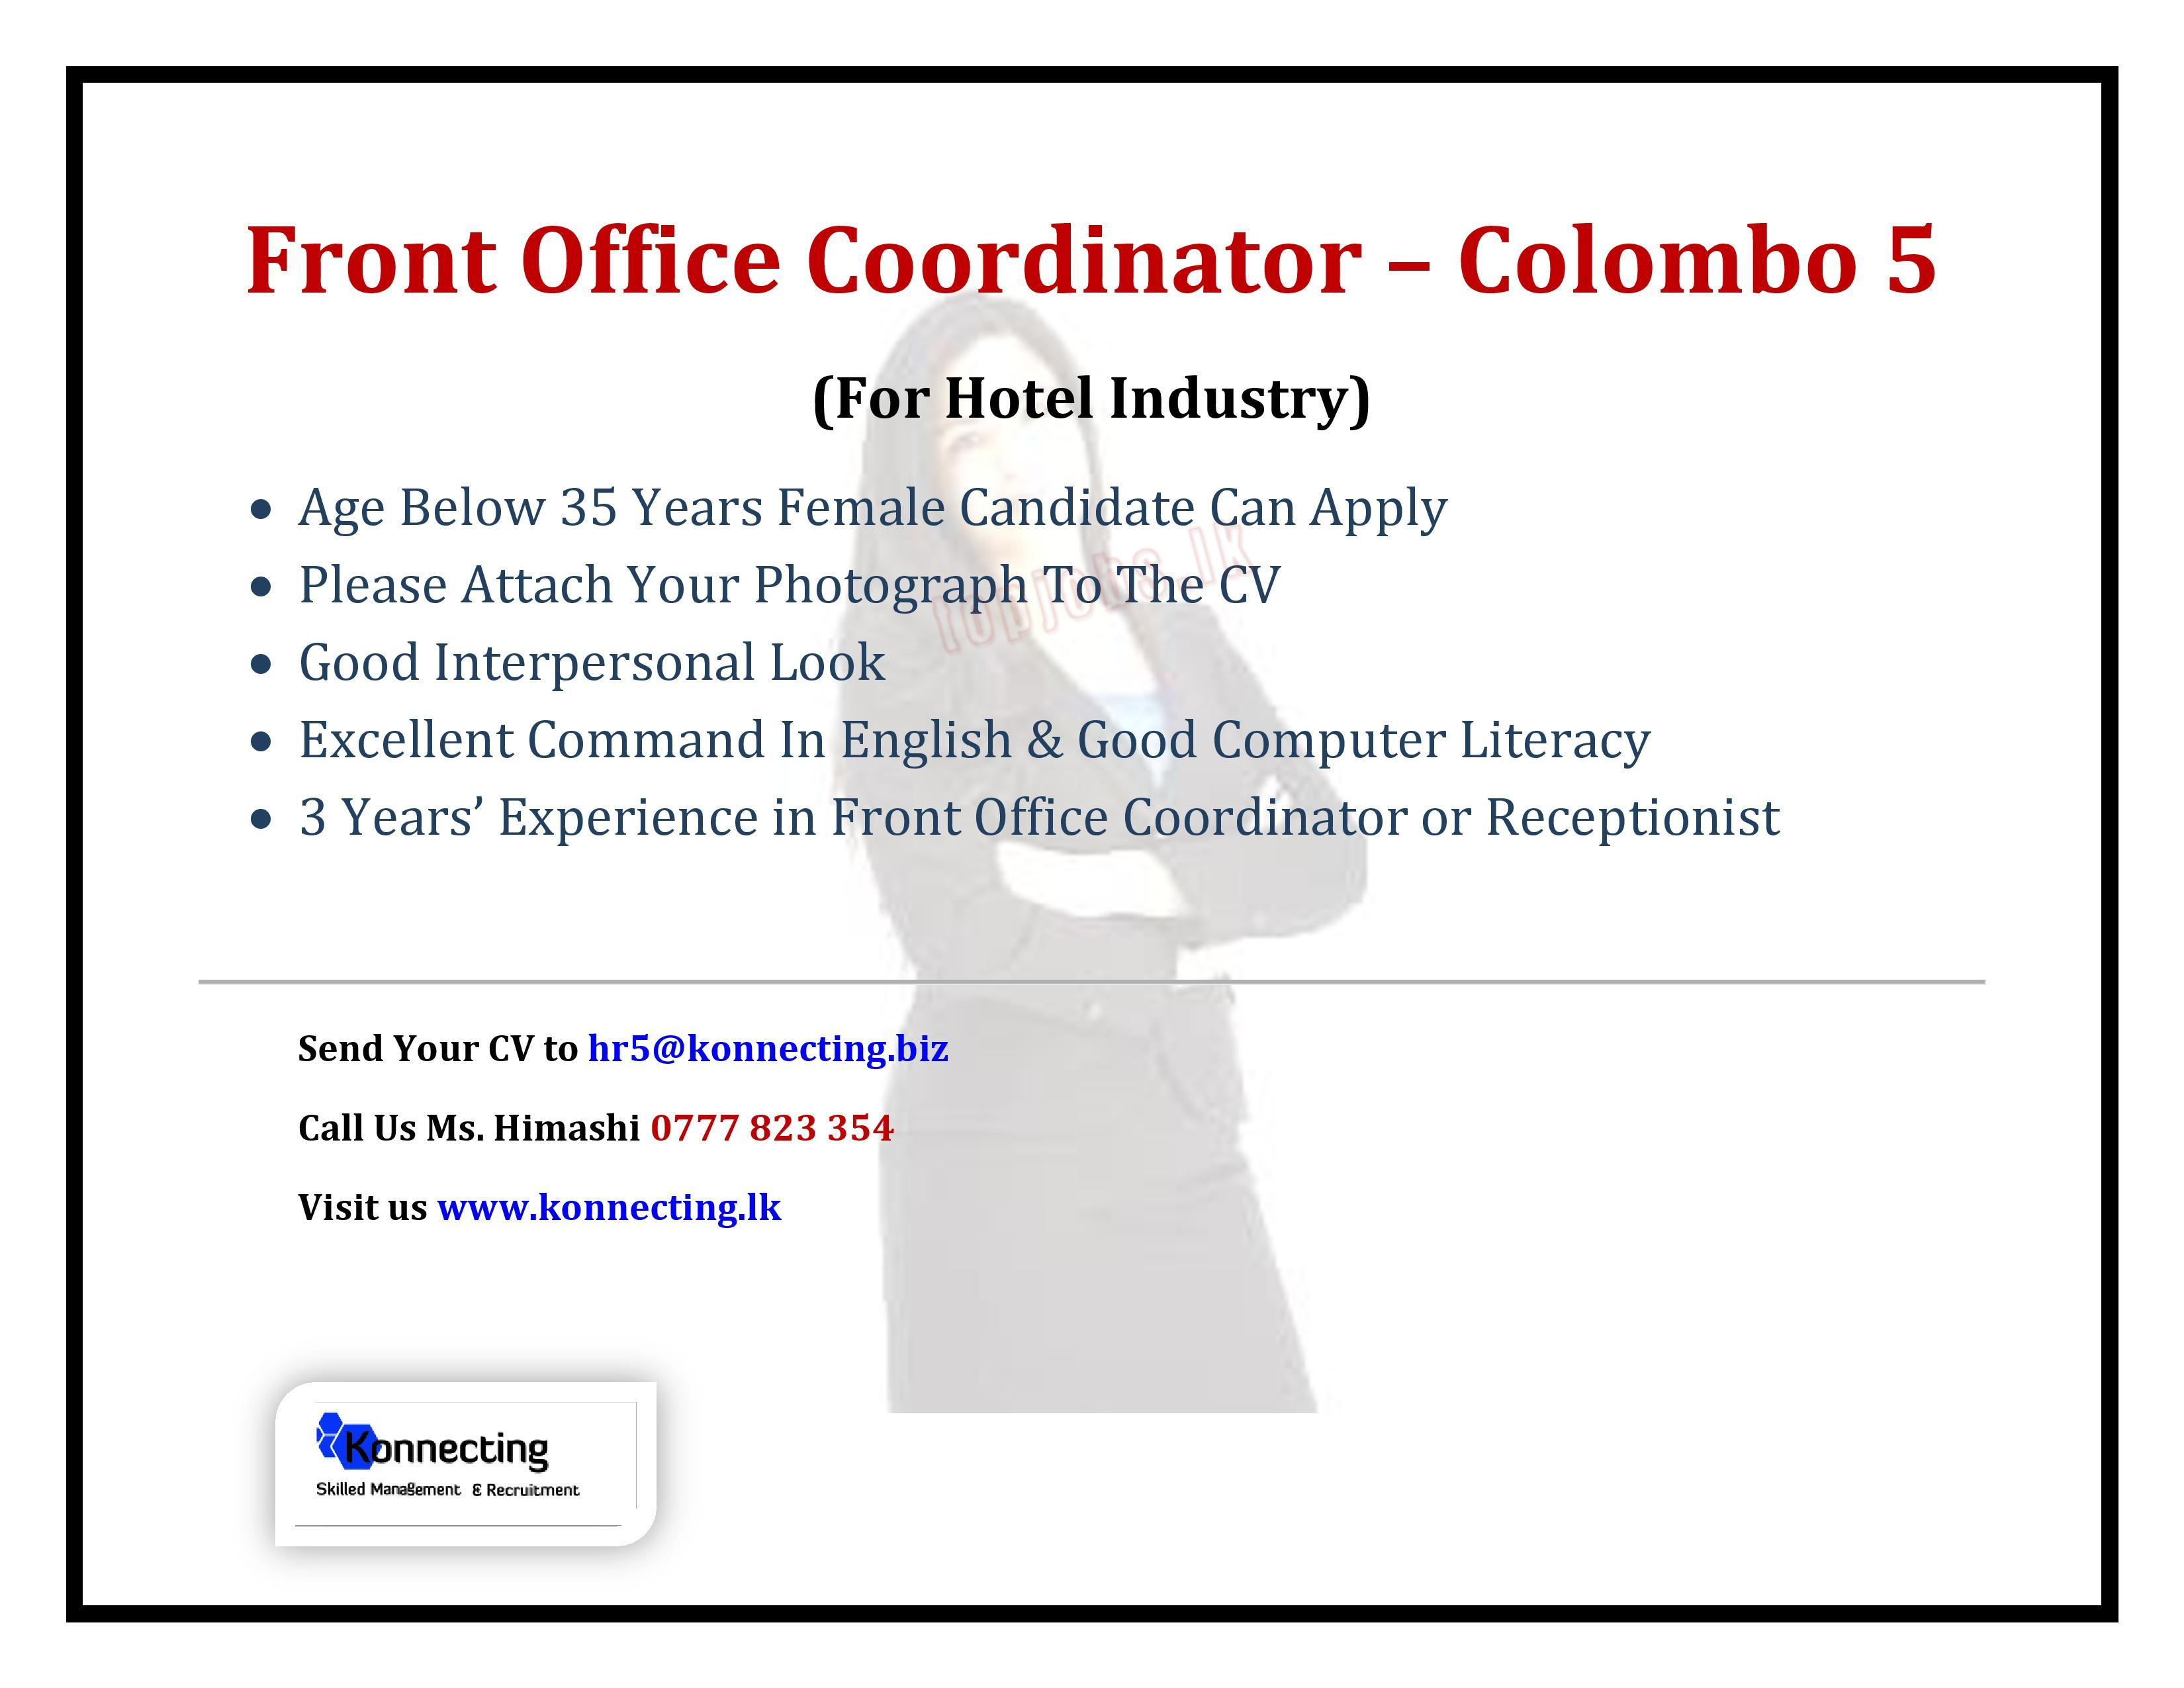 vacancy advertisement front office coordinator colombo 5 for hotel industry